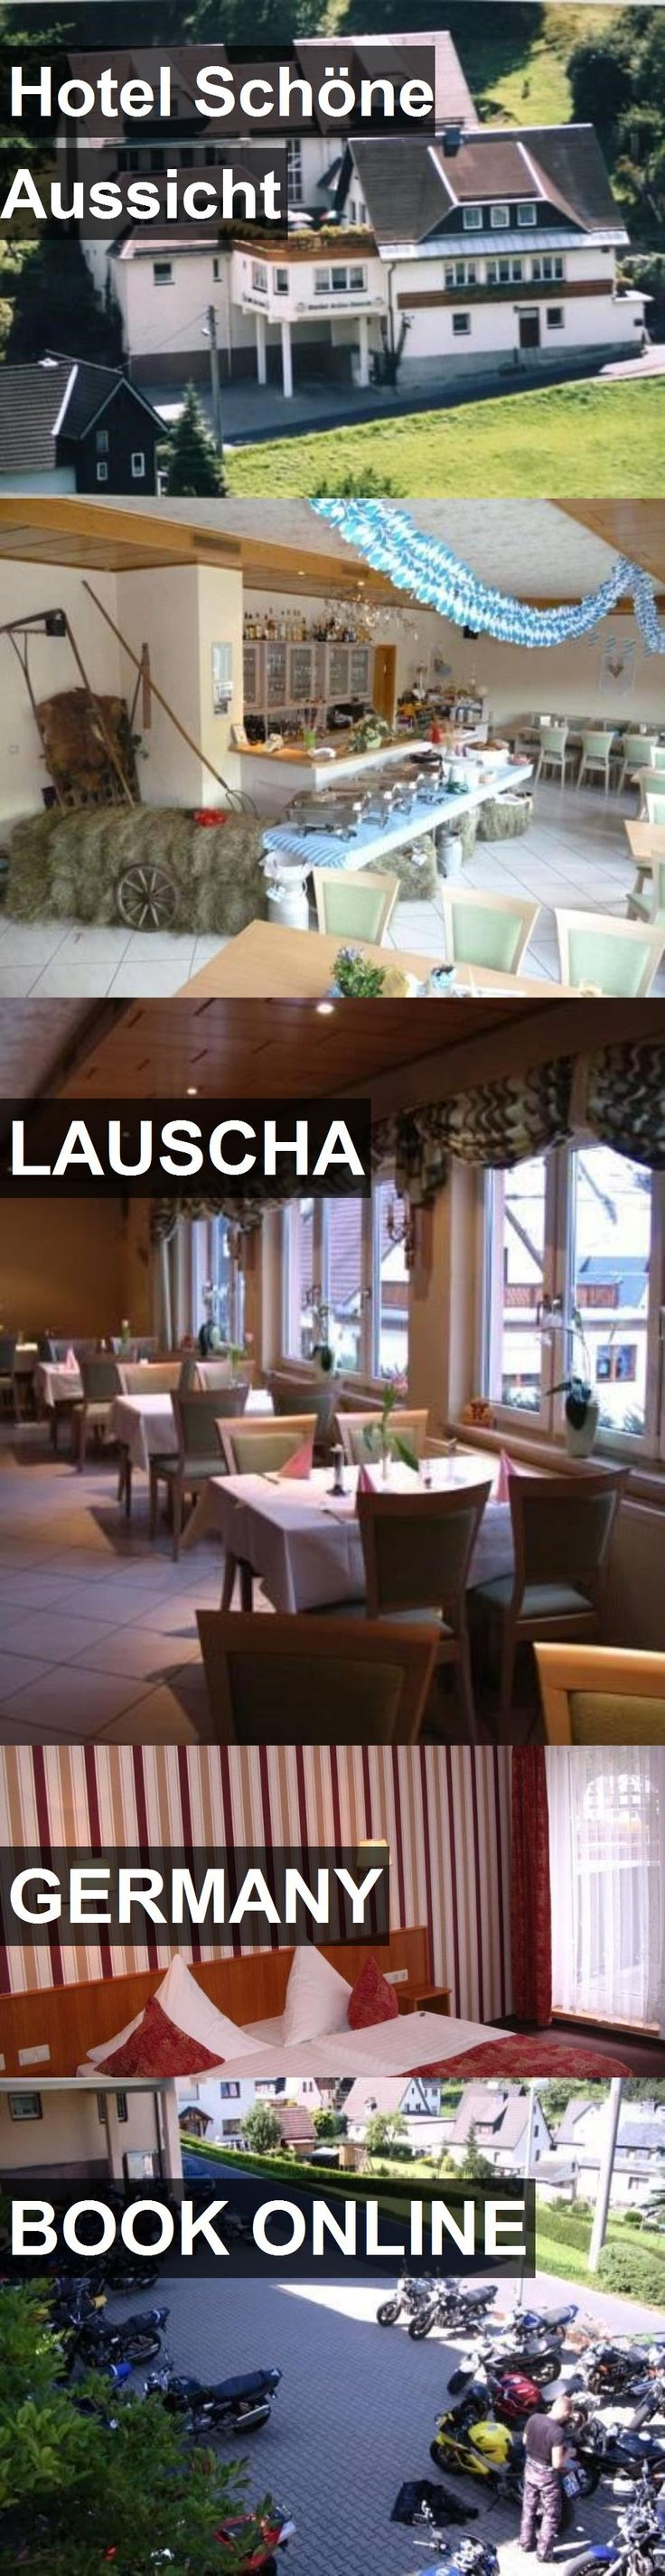 Hotel Hotel Schöne Aussicht in Lauscha, Germany. For more information, photos, reviews and best prices please follow the link. #Germany #Lauscha #hotel #travel #vacation